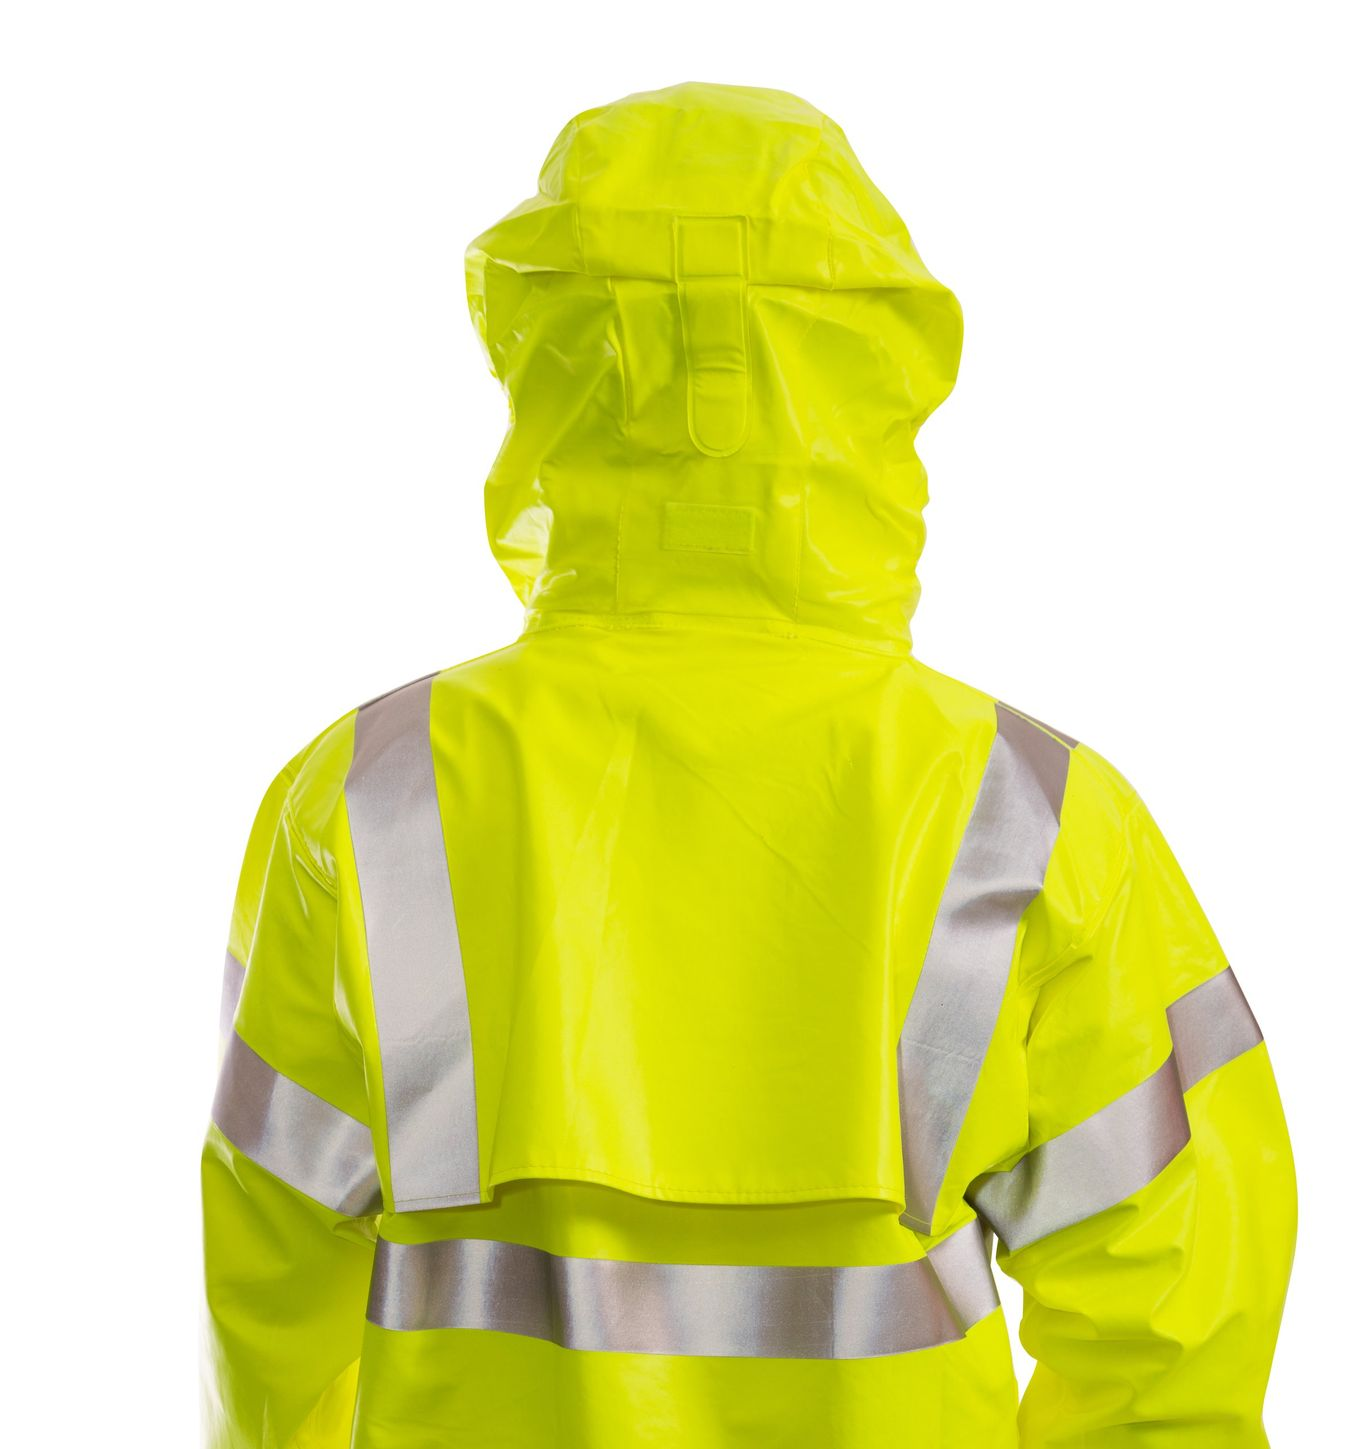 tingley-eclipse-arc-flash-and-fire-resistant-rain-coat-pvc-on-nomex-chemical-resistant-class-3-hi-vis-fluorescent-yellow-green-example.jpg